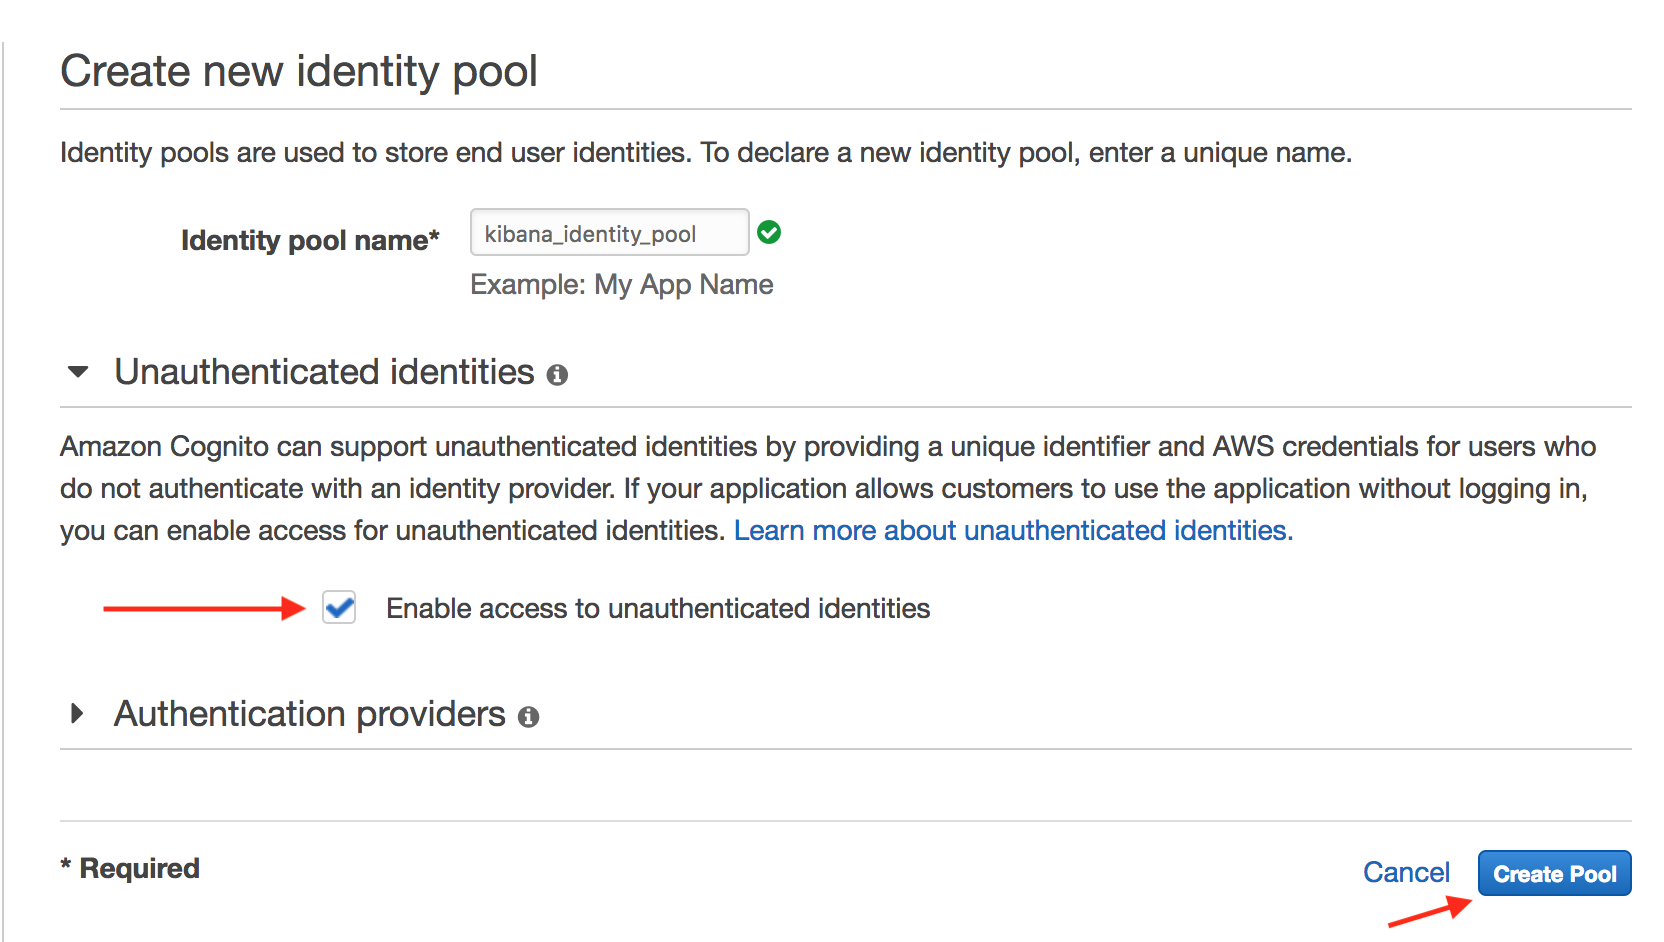 Temporarily allow unauthenticated identities